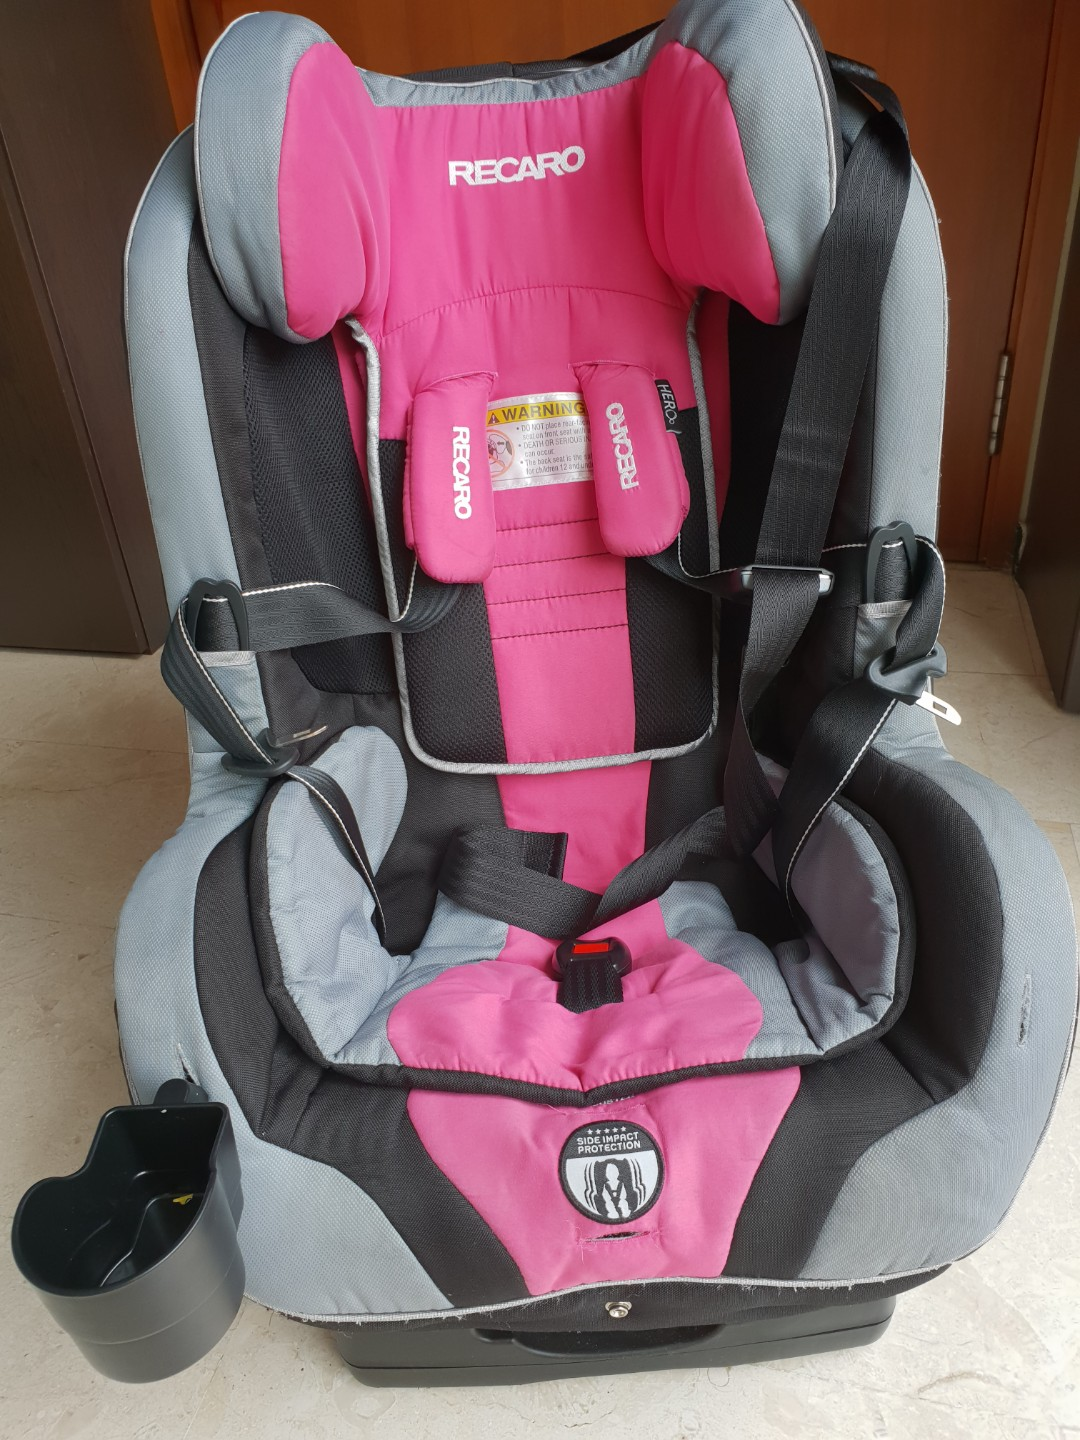 Recaro Baby Seat Parts Recaro Performance Ride Car Seat